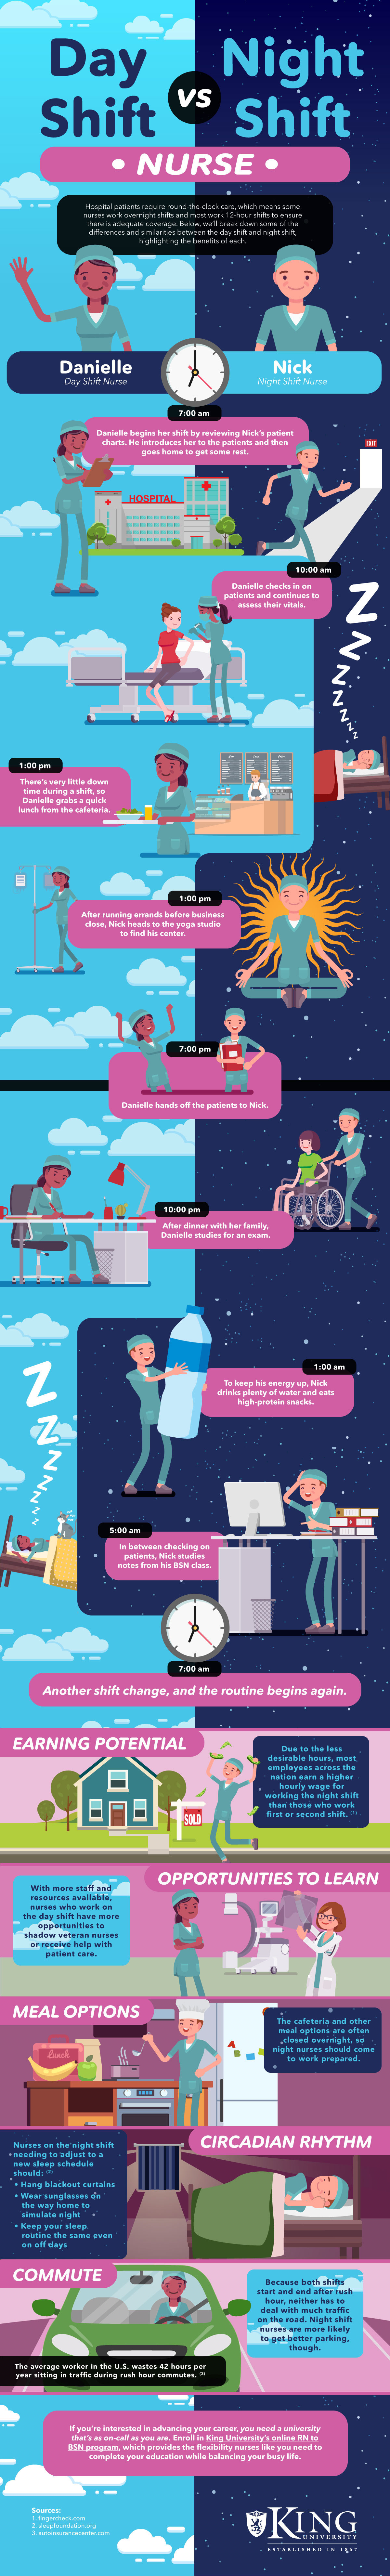 Day and Night Shift Nurses Infographic